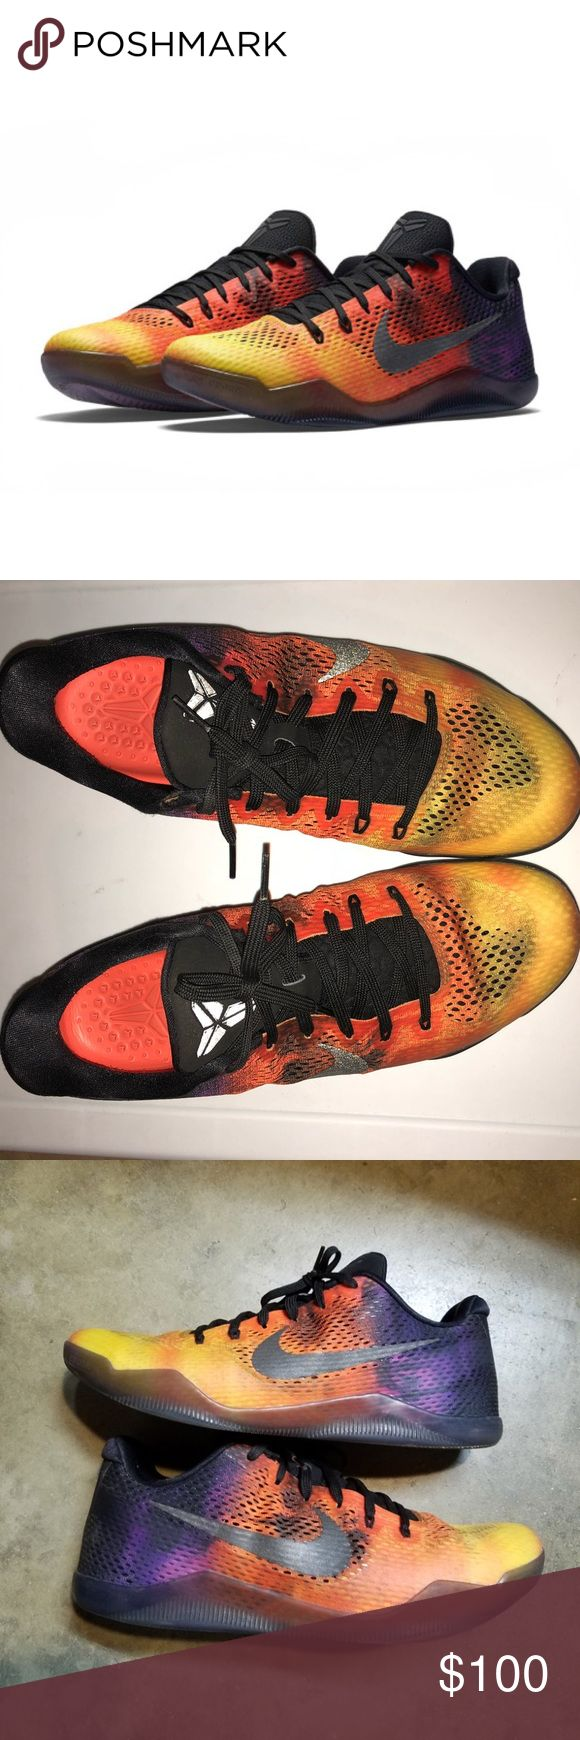 Kobe 11 sunset shoes size 12.5 Kobe 11 sunset shoes size 12.5. Like new condition. Only worn 2-3 times. Sorry, no trades. Nike Shoes Athletic Shoes